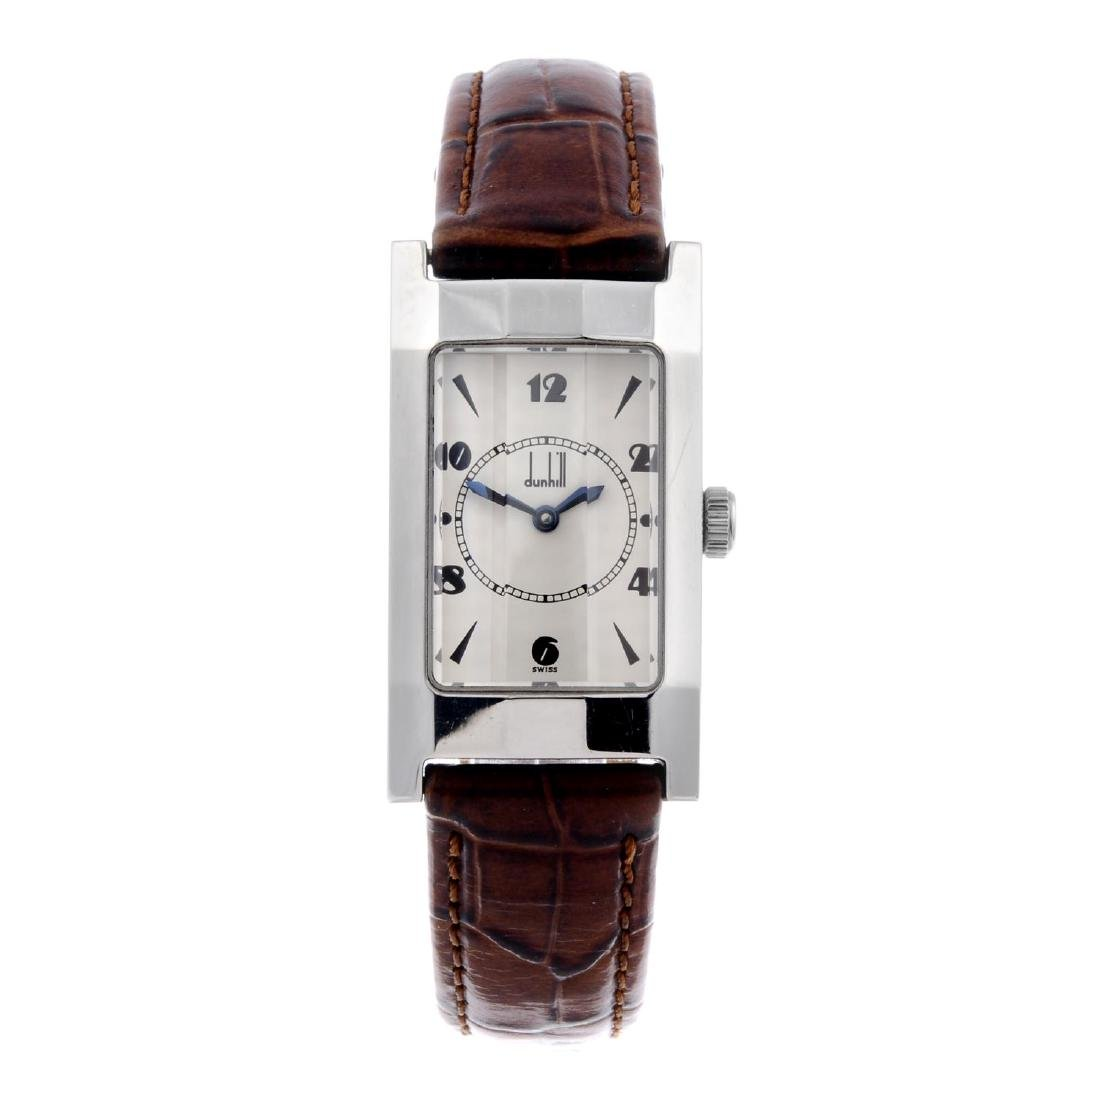 DUNHILL - a lady's Facet wrist watch. Stainless steel